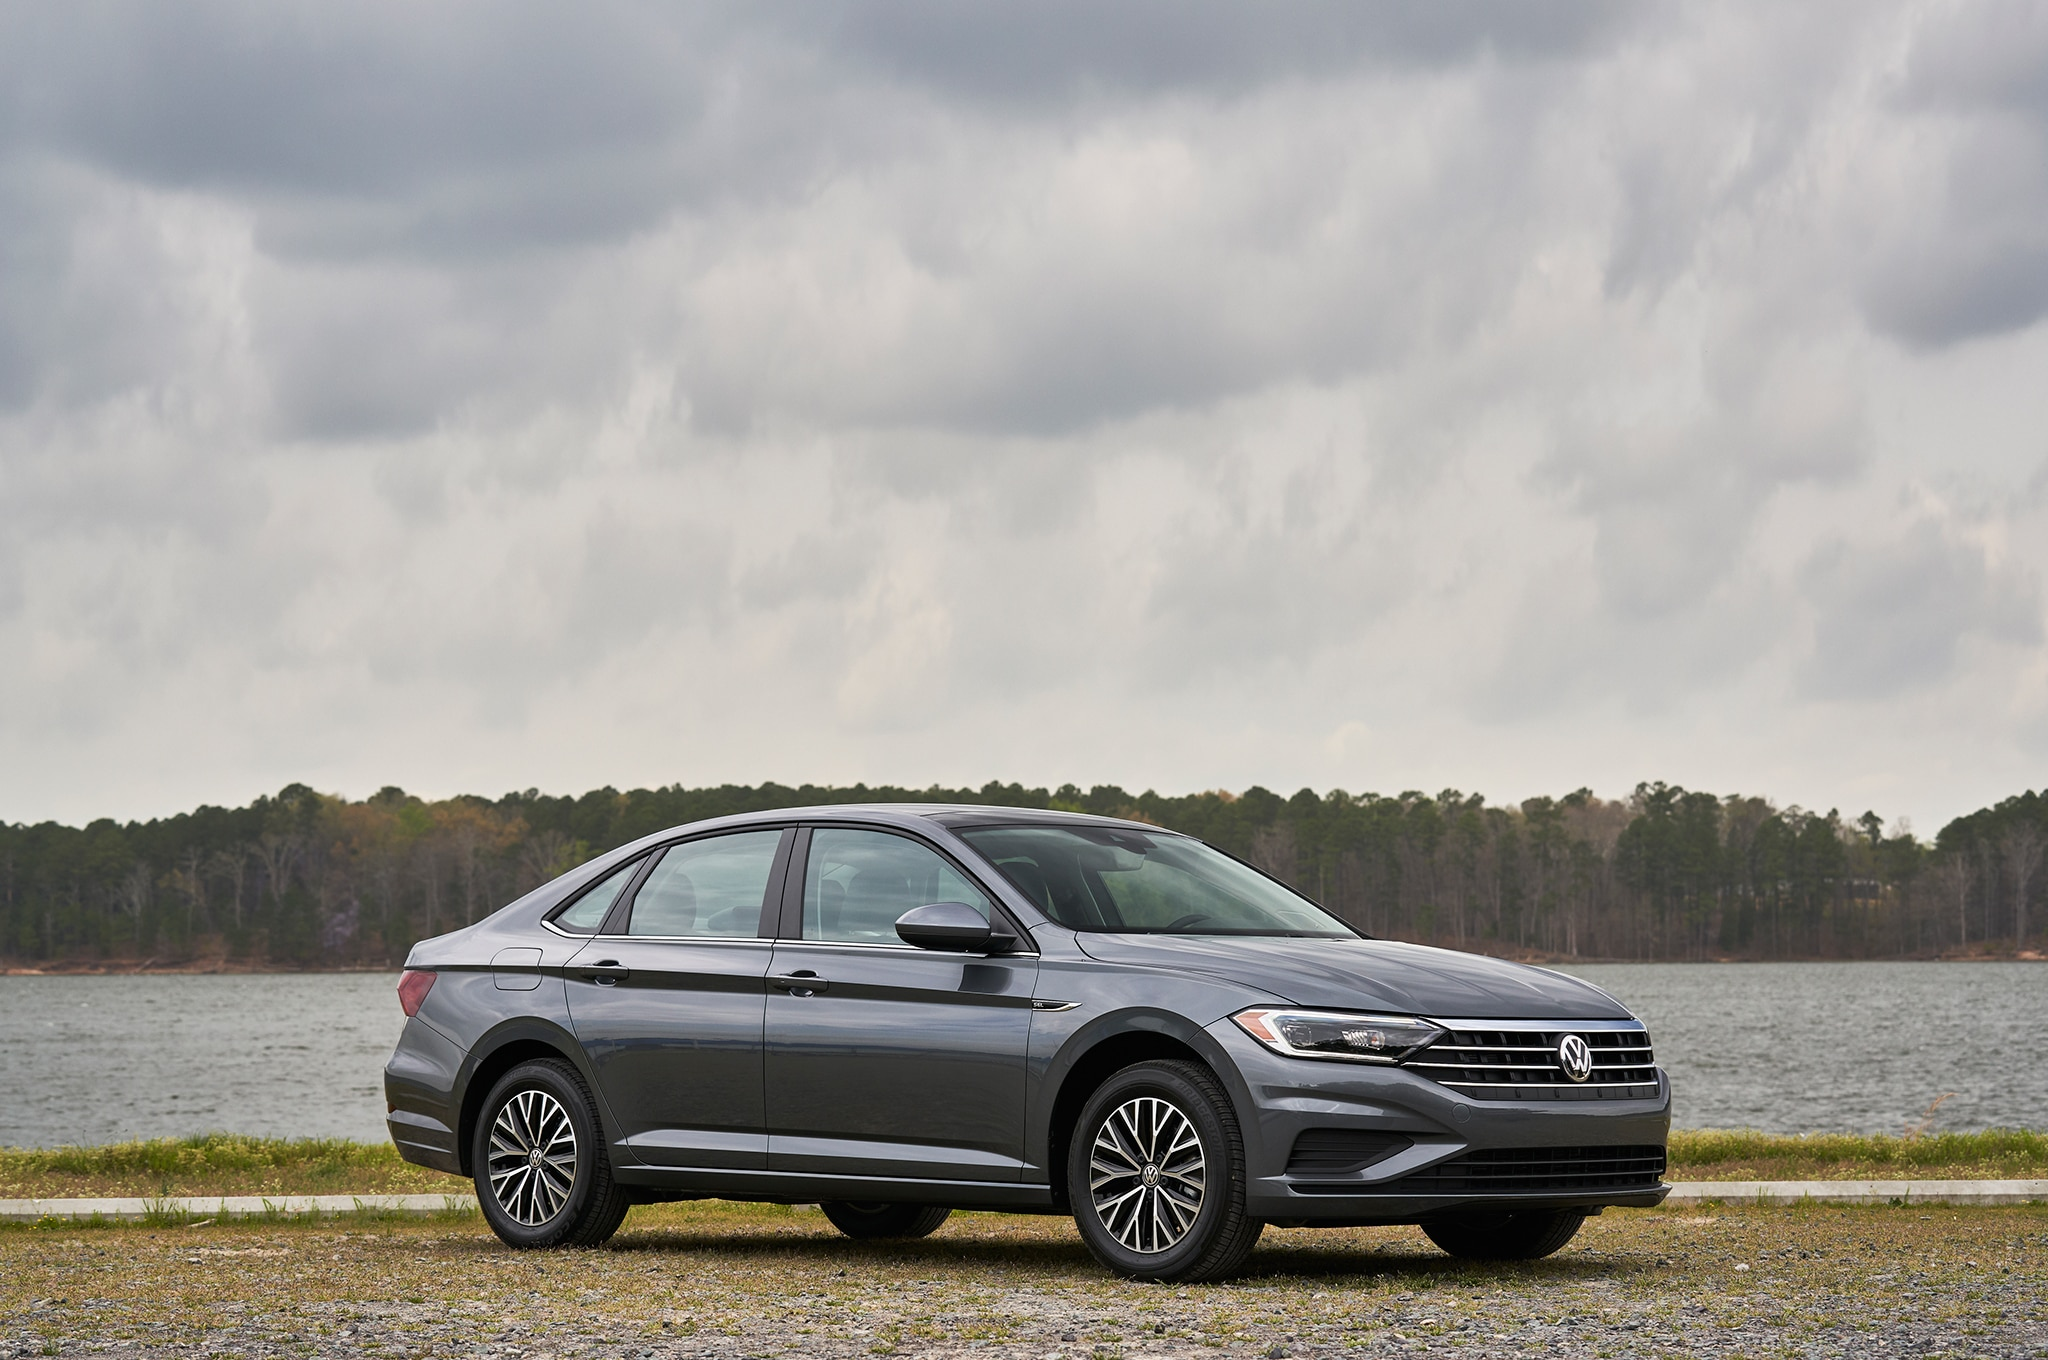 2019 Volkswagen Jetta First Drive Review | Automobile Magazine